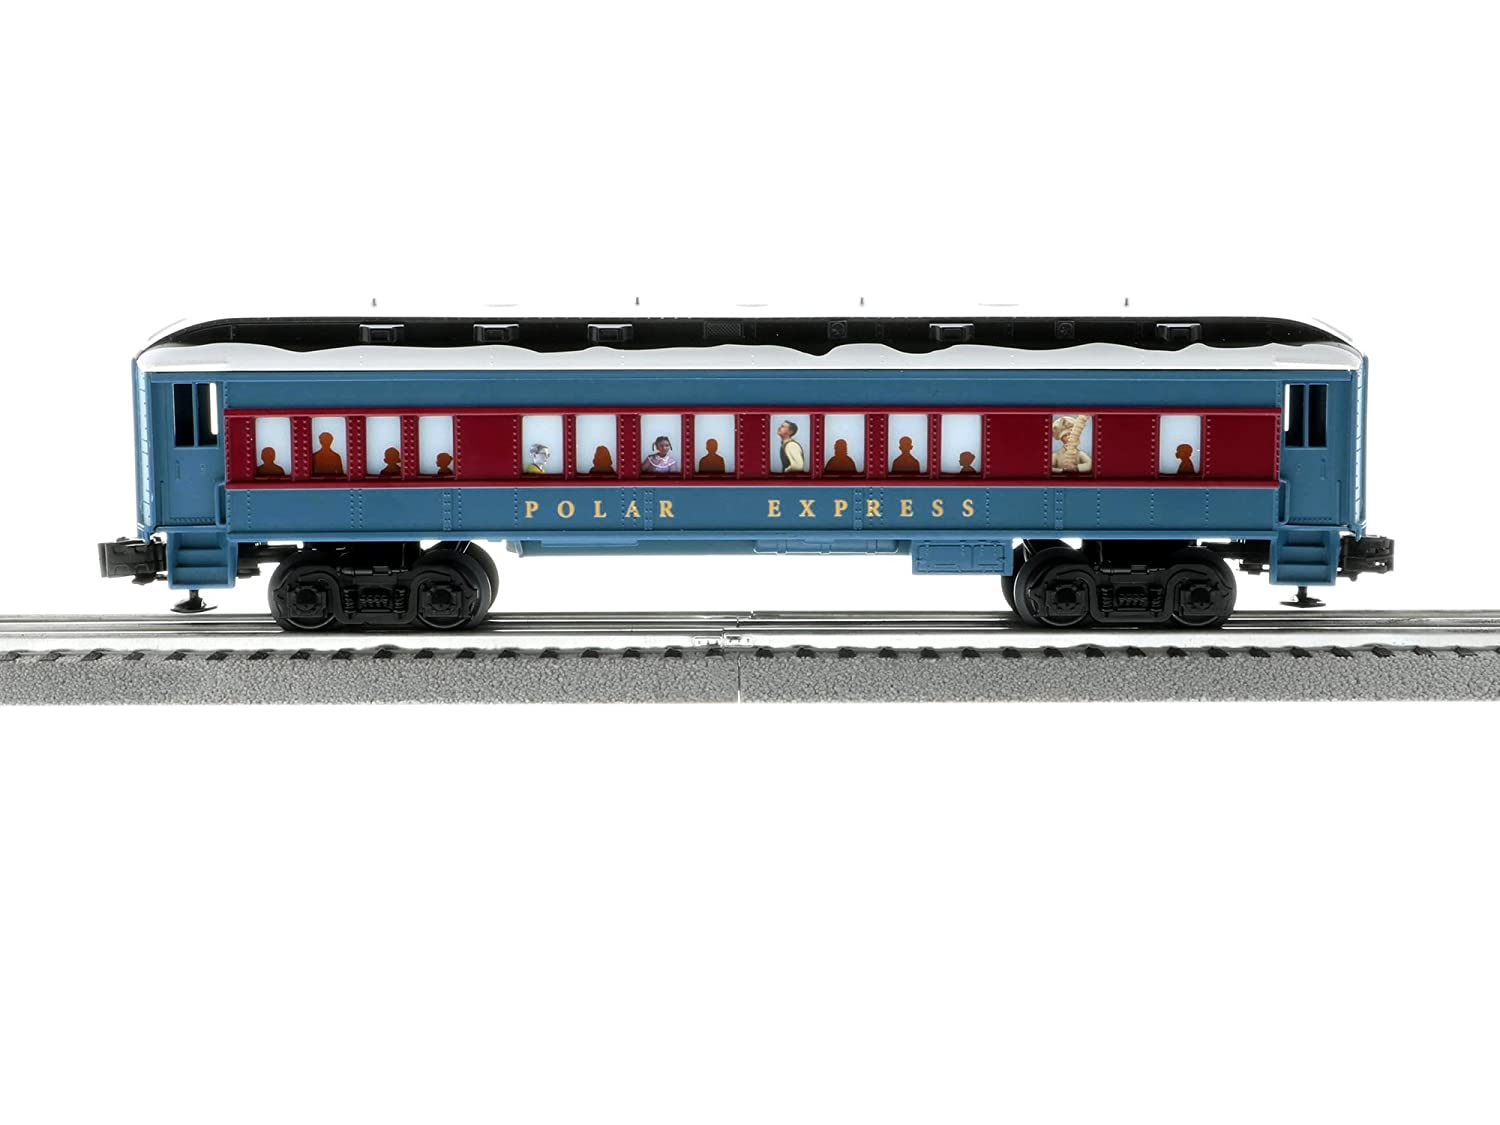 Lionel The Polar Express Electric O Gauge Model Train Set w// Remote and Bluetooth Capability